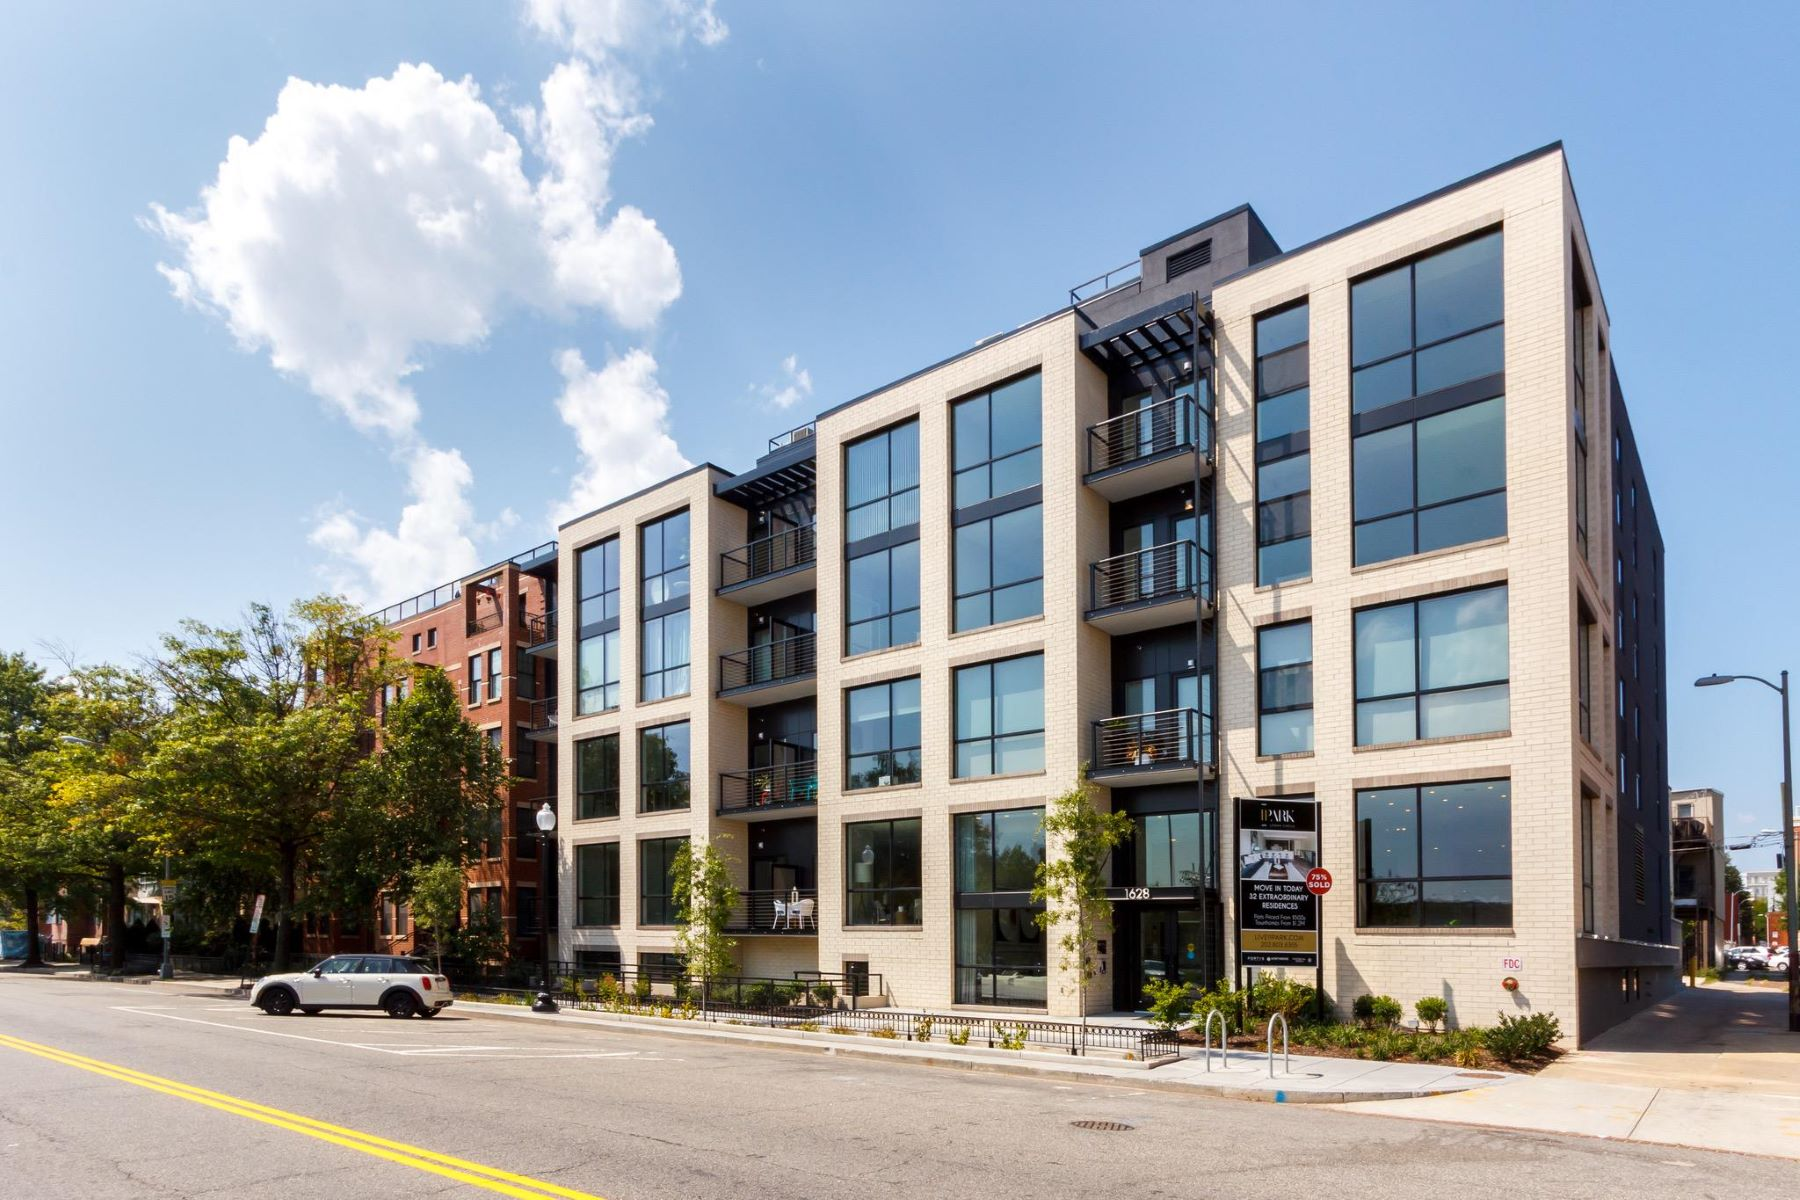 Other Residential for Sale at 1628 11th St NW #102 1628 11th St NW #102 Washington, District Of Columbia 20001 United States